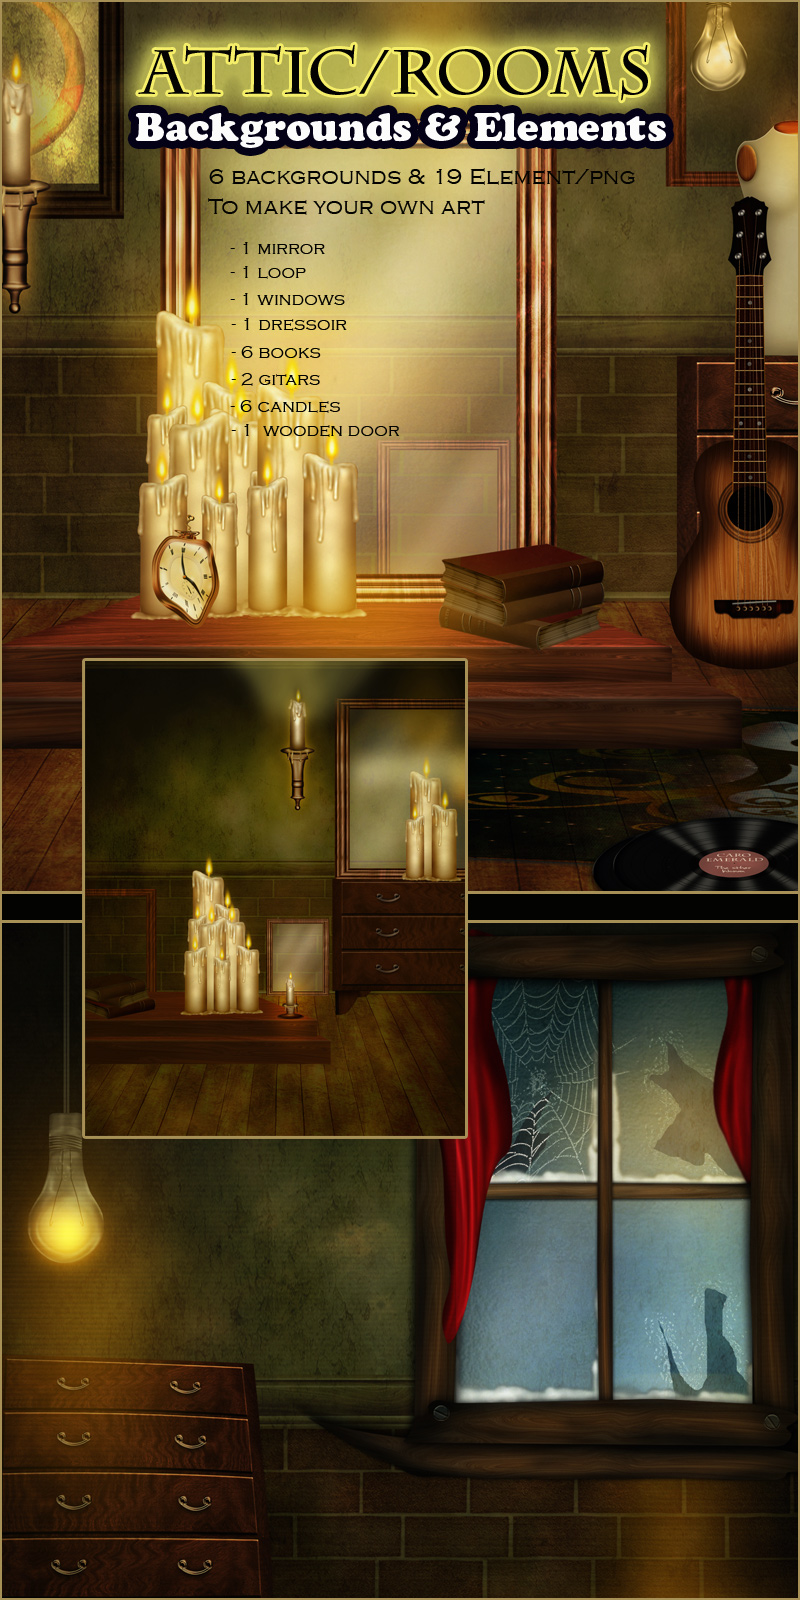 Attic-Rooms Backgrounds and Elements